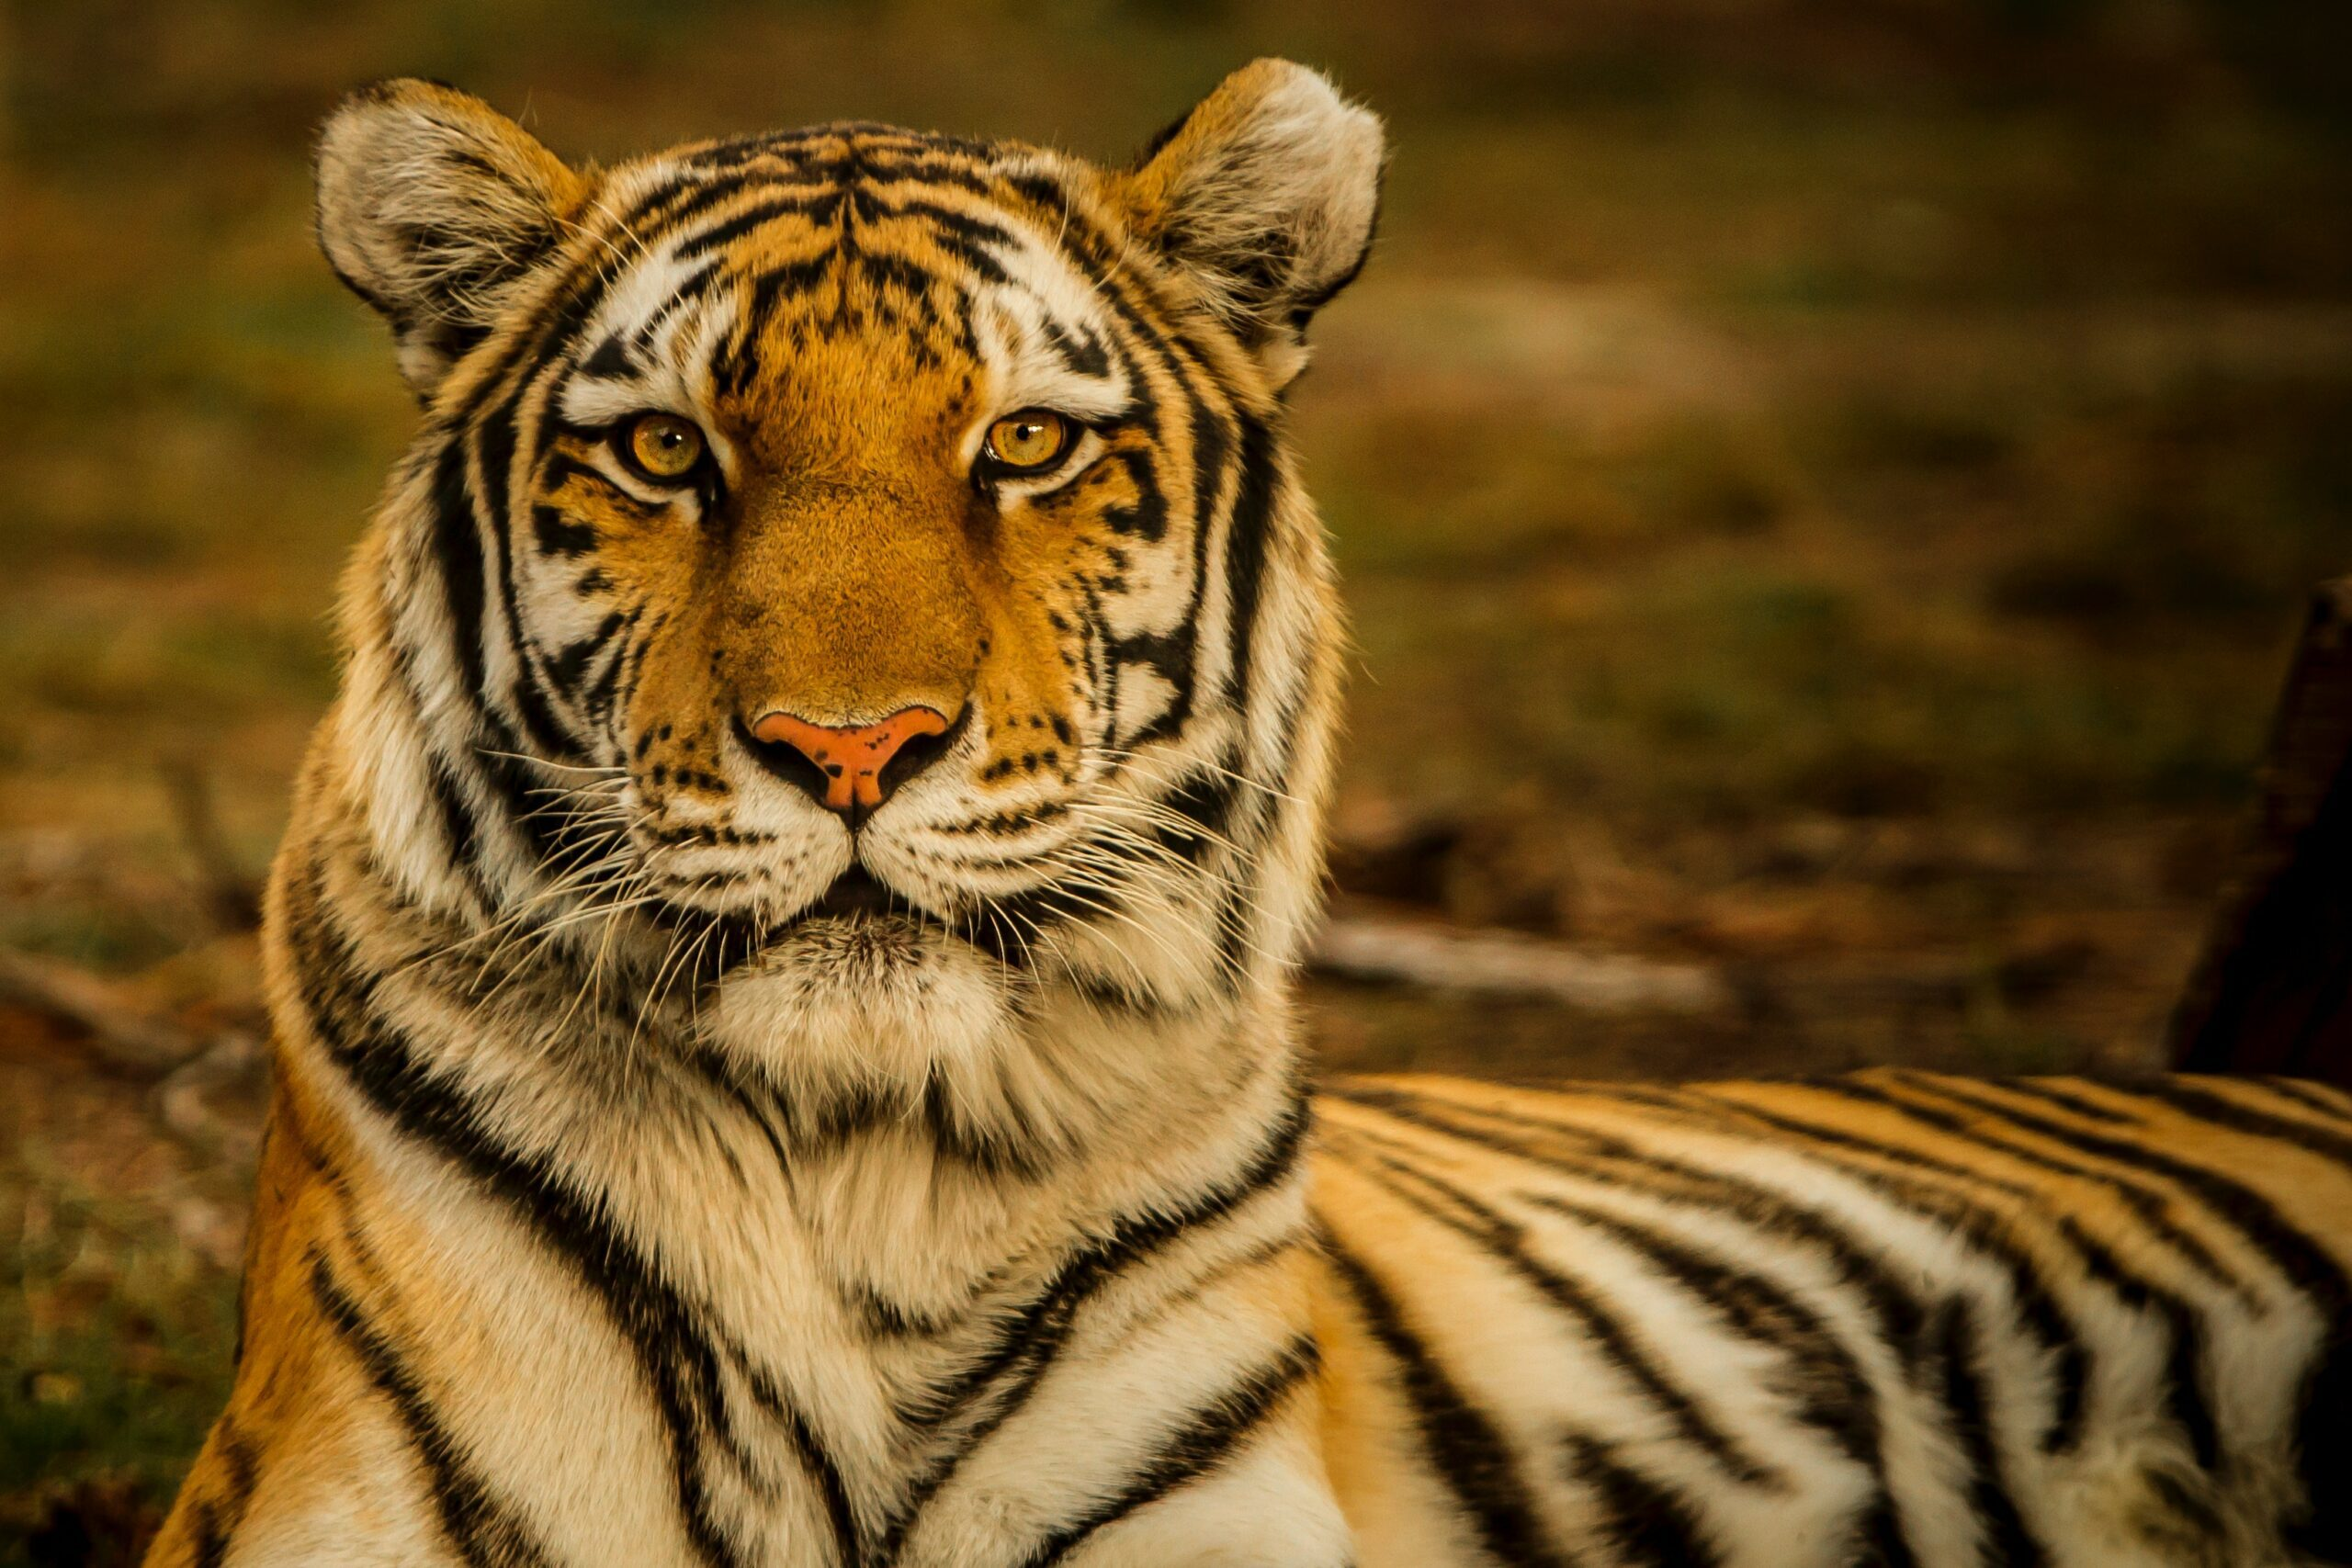 close-up photo of a Bengal tiger with a blurred background as seen on india safari